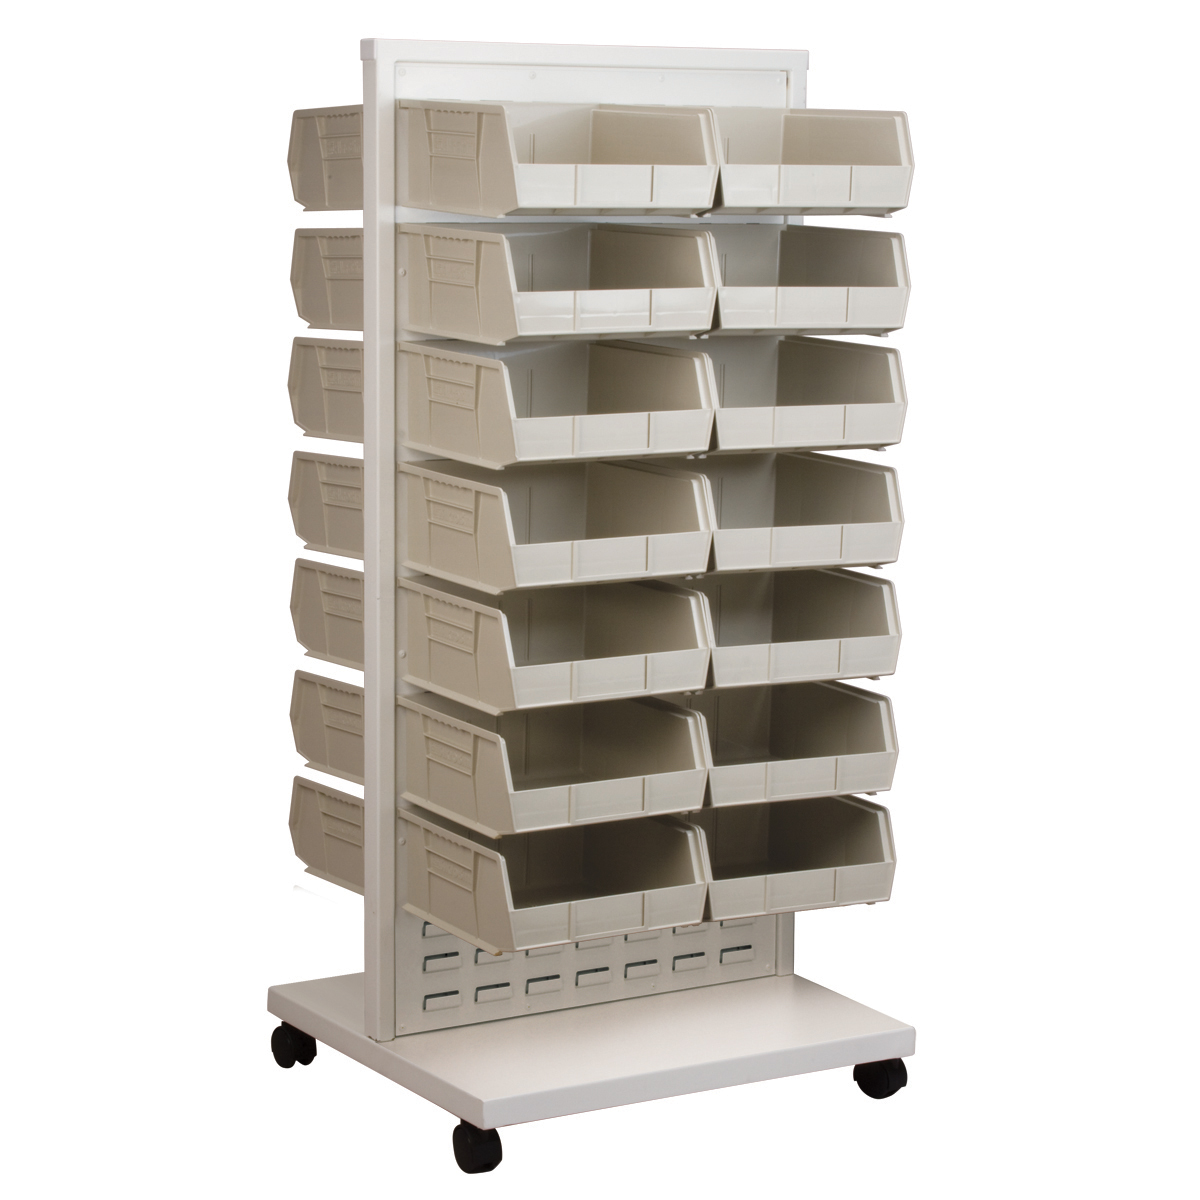 Item DISCONTINUED by Manufacturer.  ReadySpace Floor Unit w/ 30 AkroBins, 30235STONE, White (30553235S).  This item sold in carton quantities of 1.